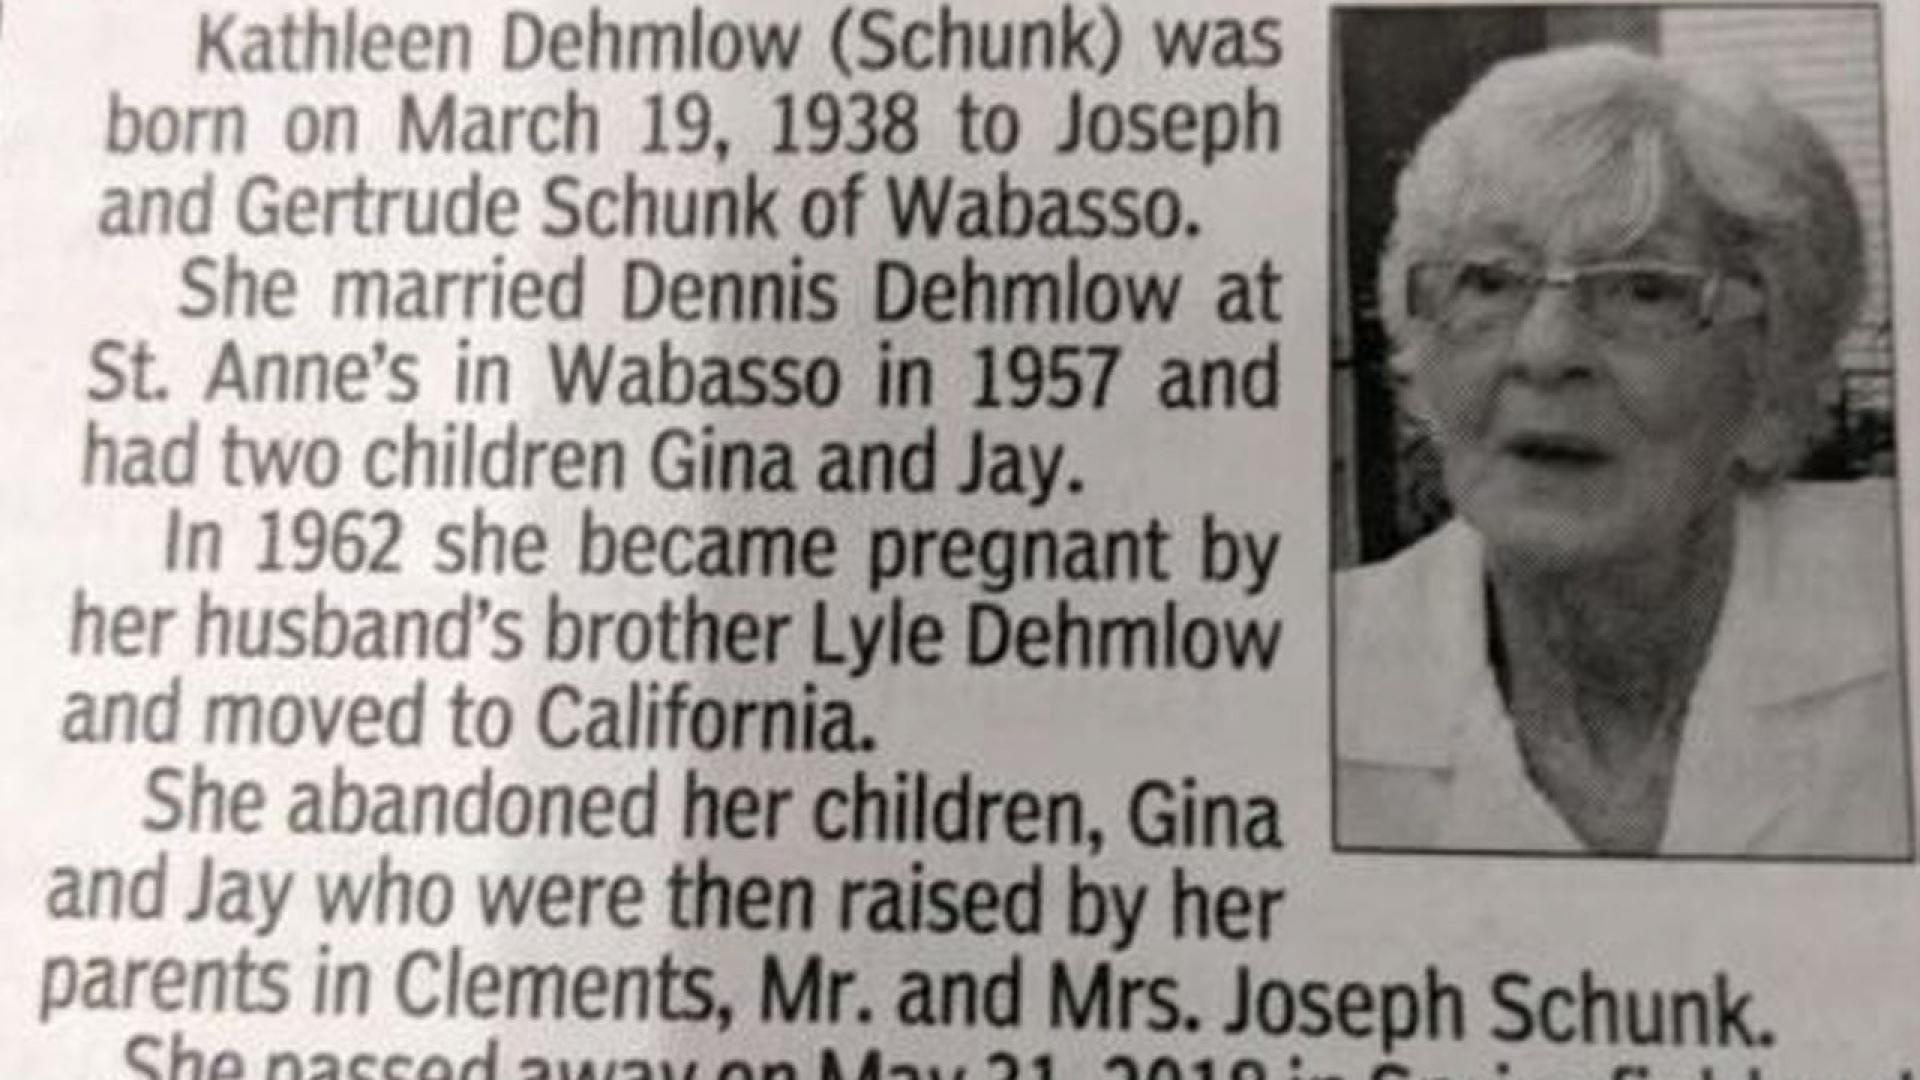 The obituary started unassumingly enough, explaining that Kathleen Dehmlow (nee Schunk) was born in the winter of 1938 to Joseph and Gertrude Schunk of Wabasso, a tiny city of less than 600 people in the middle of Minnesota.